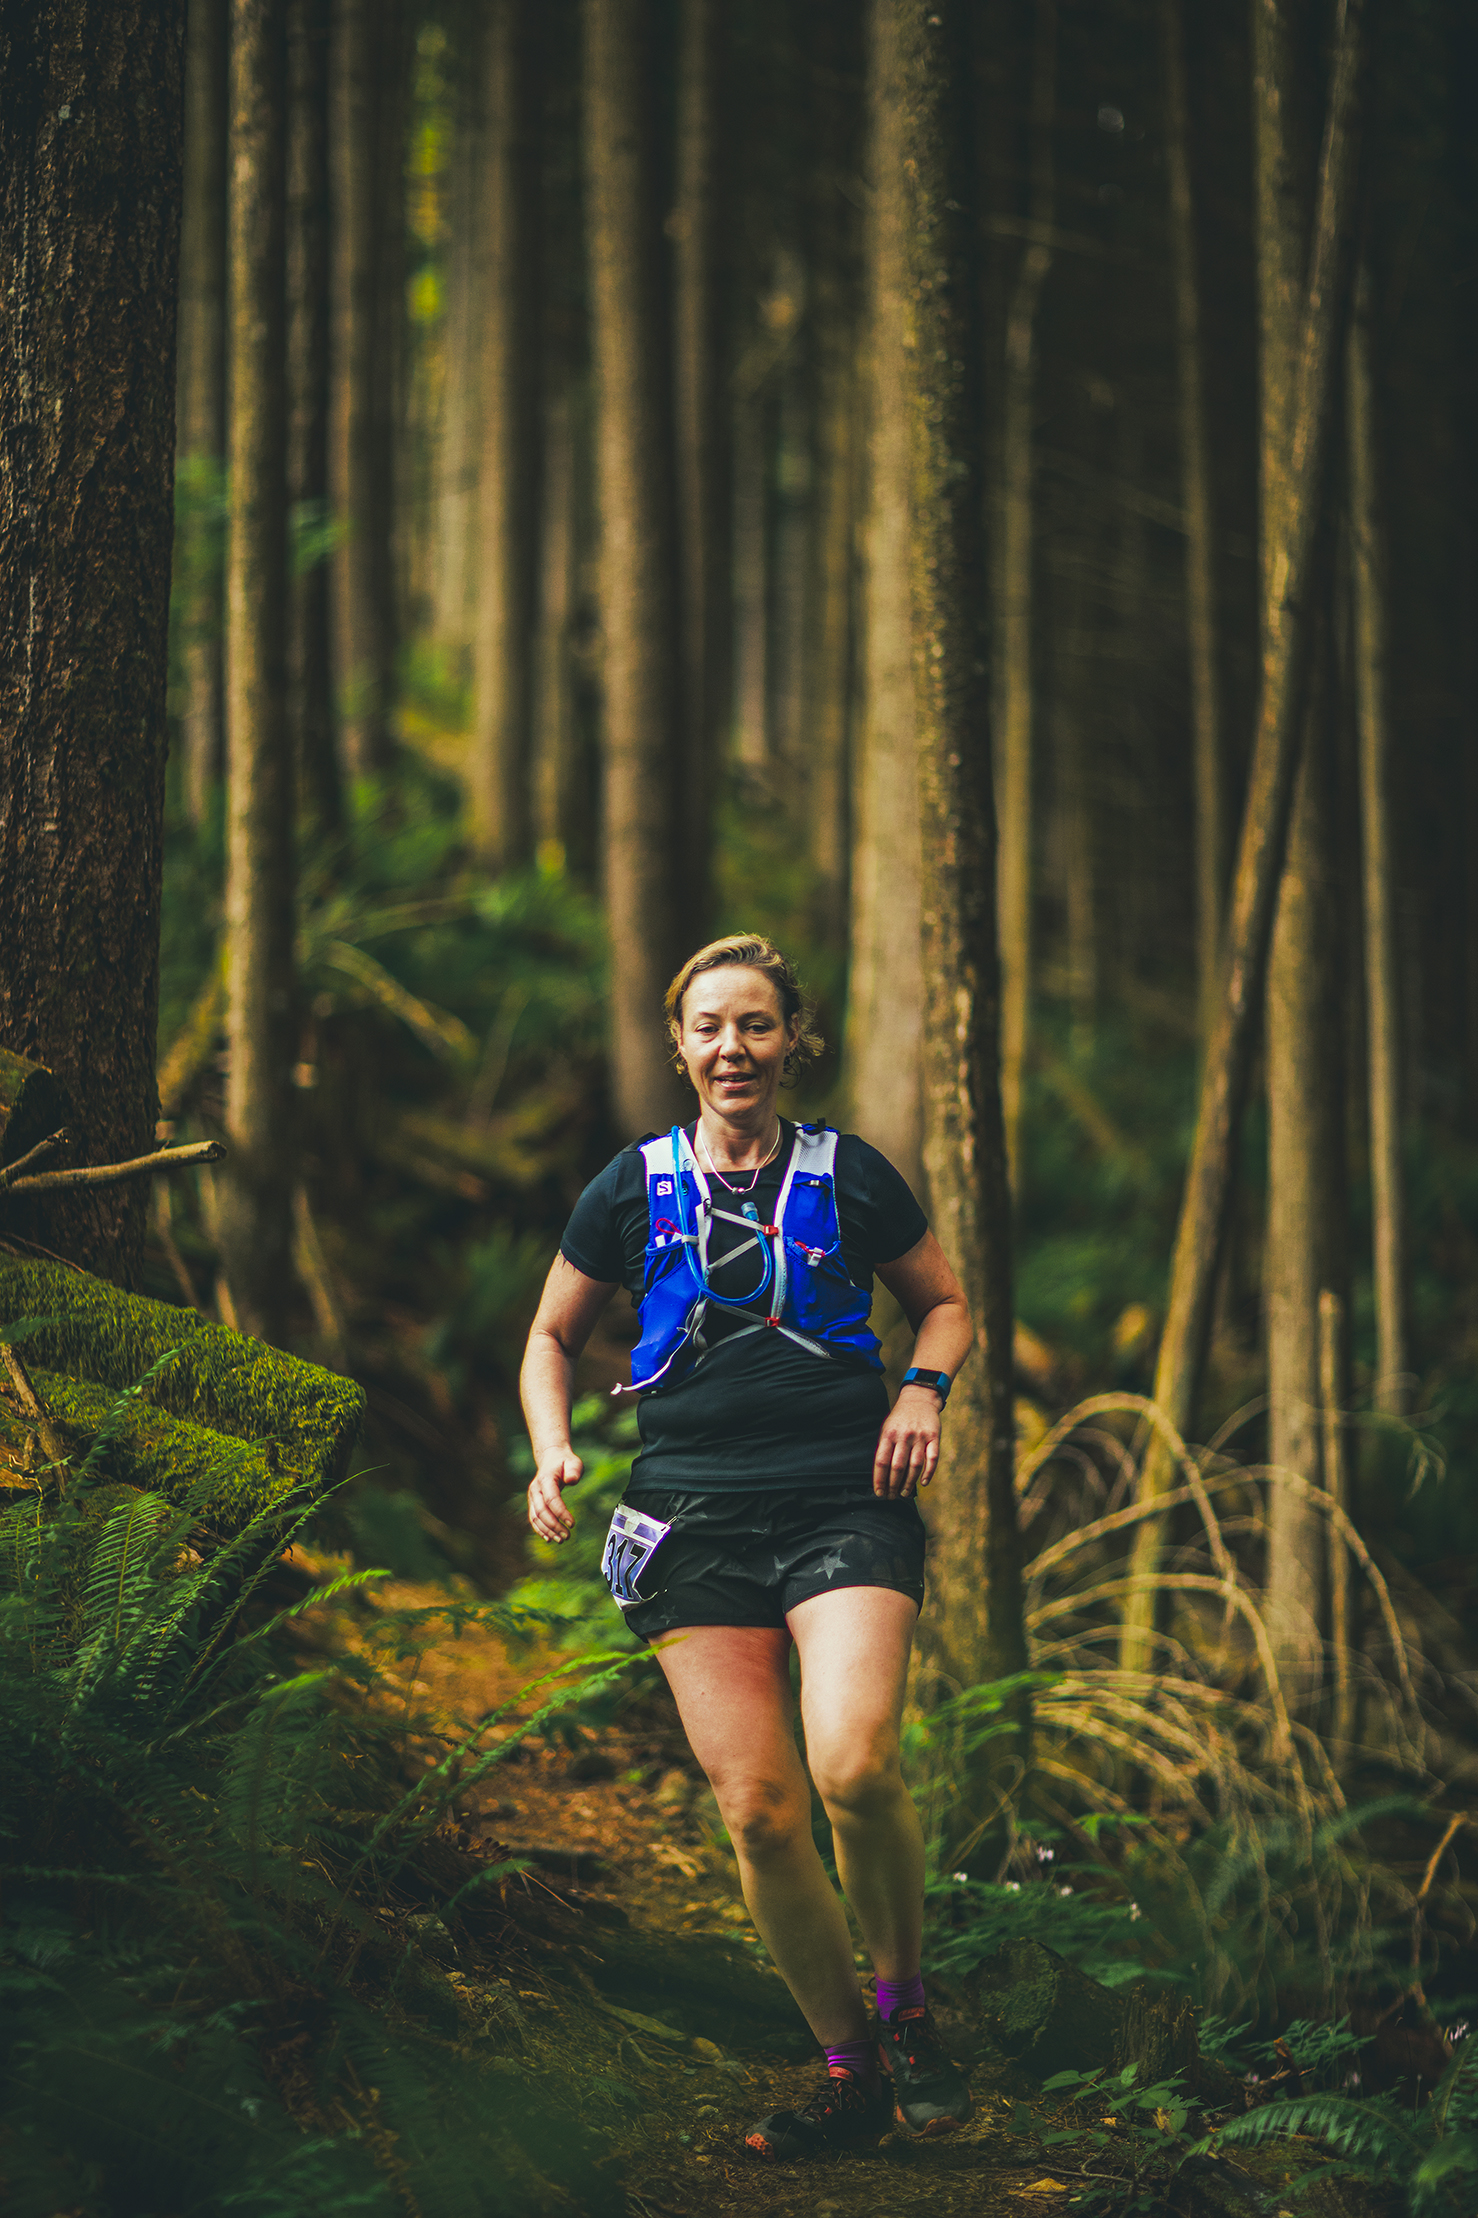 Fraser Valley Trail Races - Bear Mountain - IMG2_2381 by  Brice Ferre Studio - Vancouver Portrait Adventure and Athlete Photographer.jpg